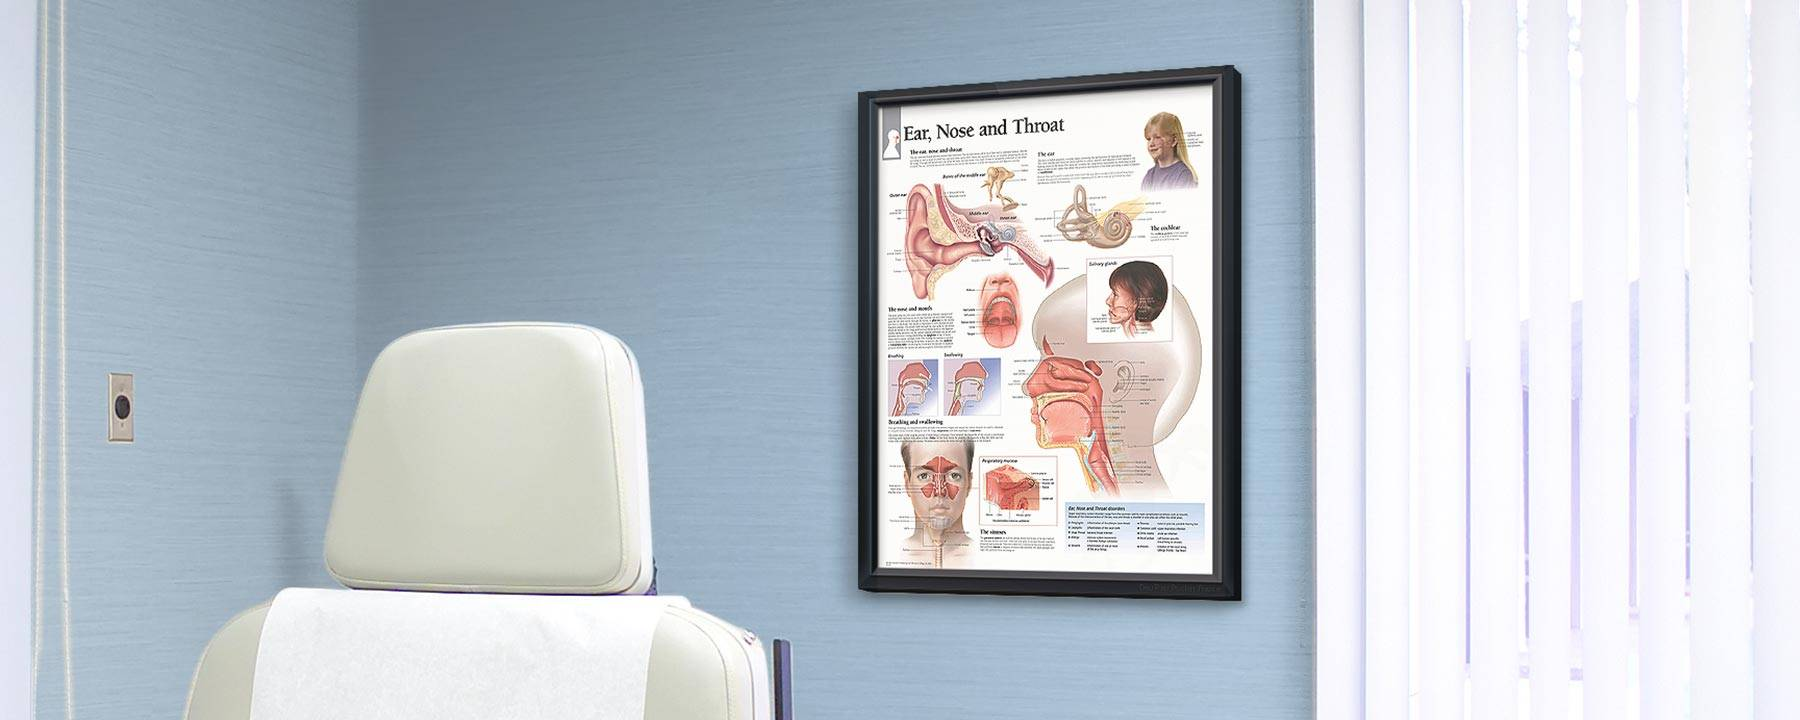 Exam room with framed poster